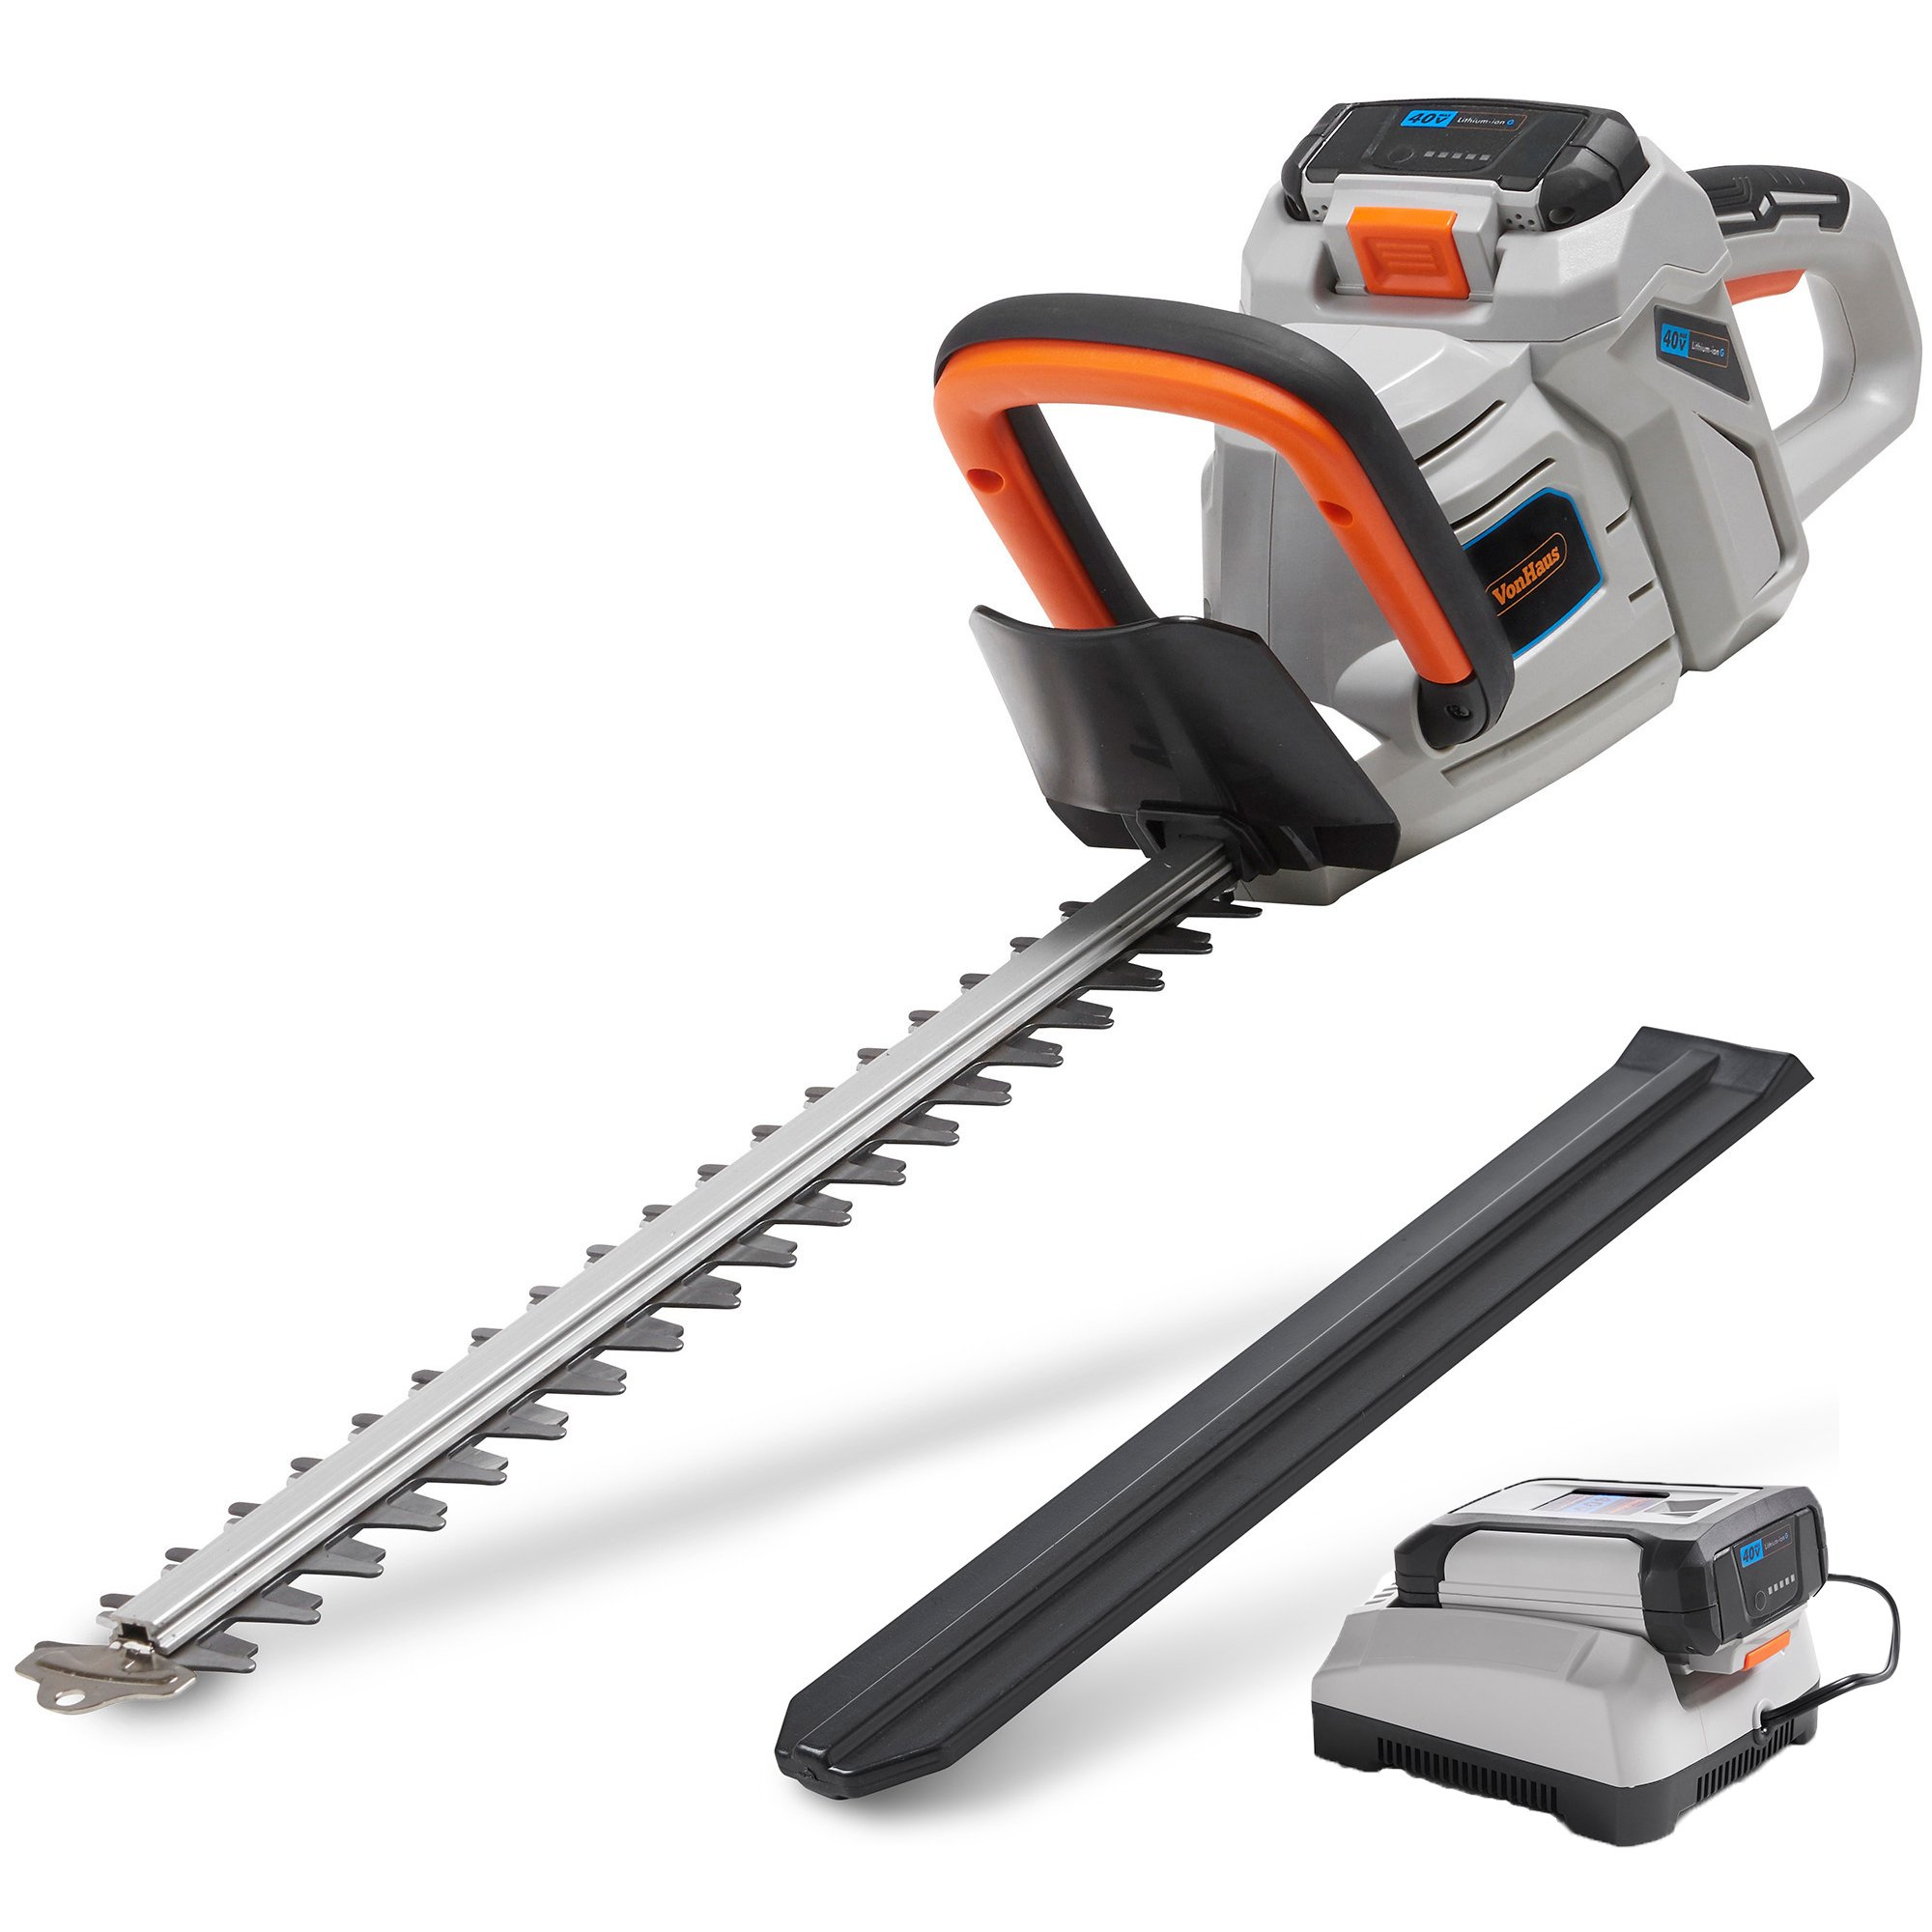 VonHaus 40V Max 20'' Dual Action Cordless Hedge Trimmer with 2.0Ah Lithium-Ion Battery and Charger Kit Included